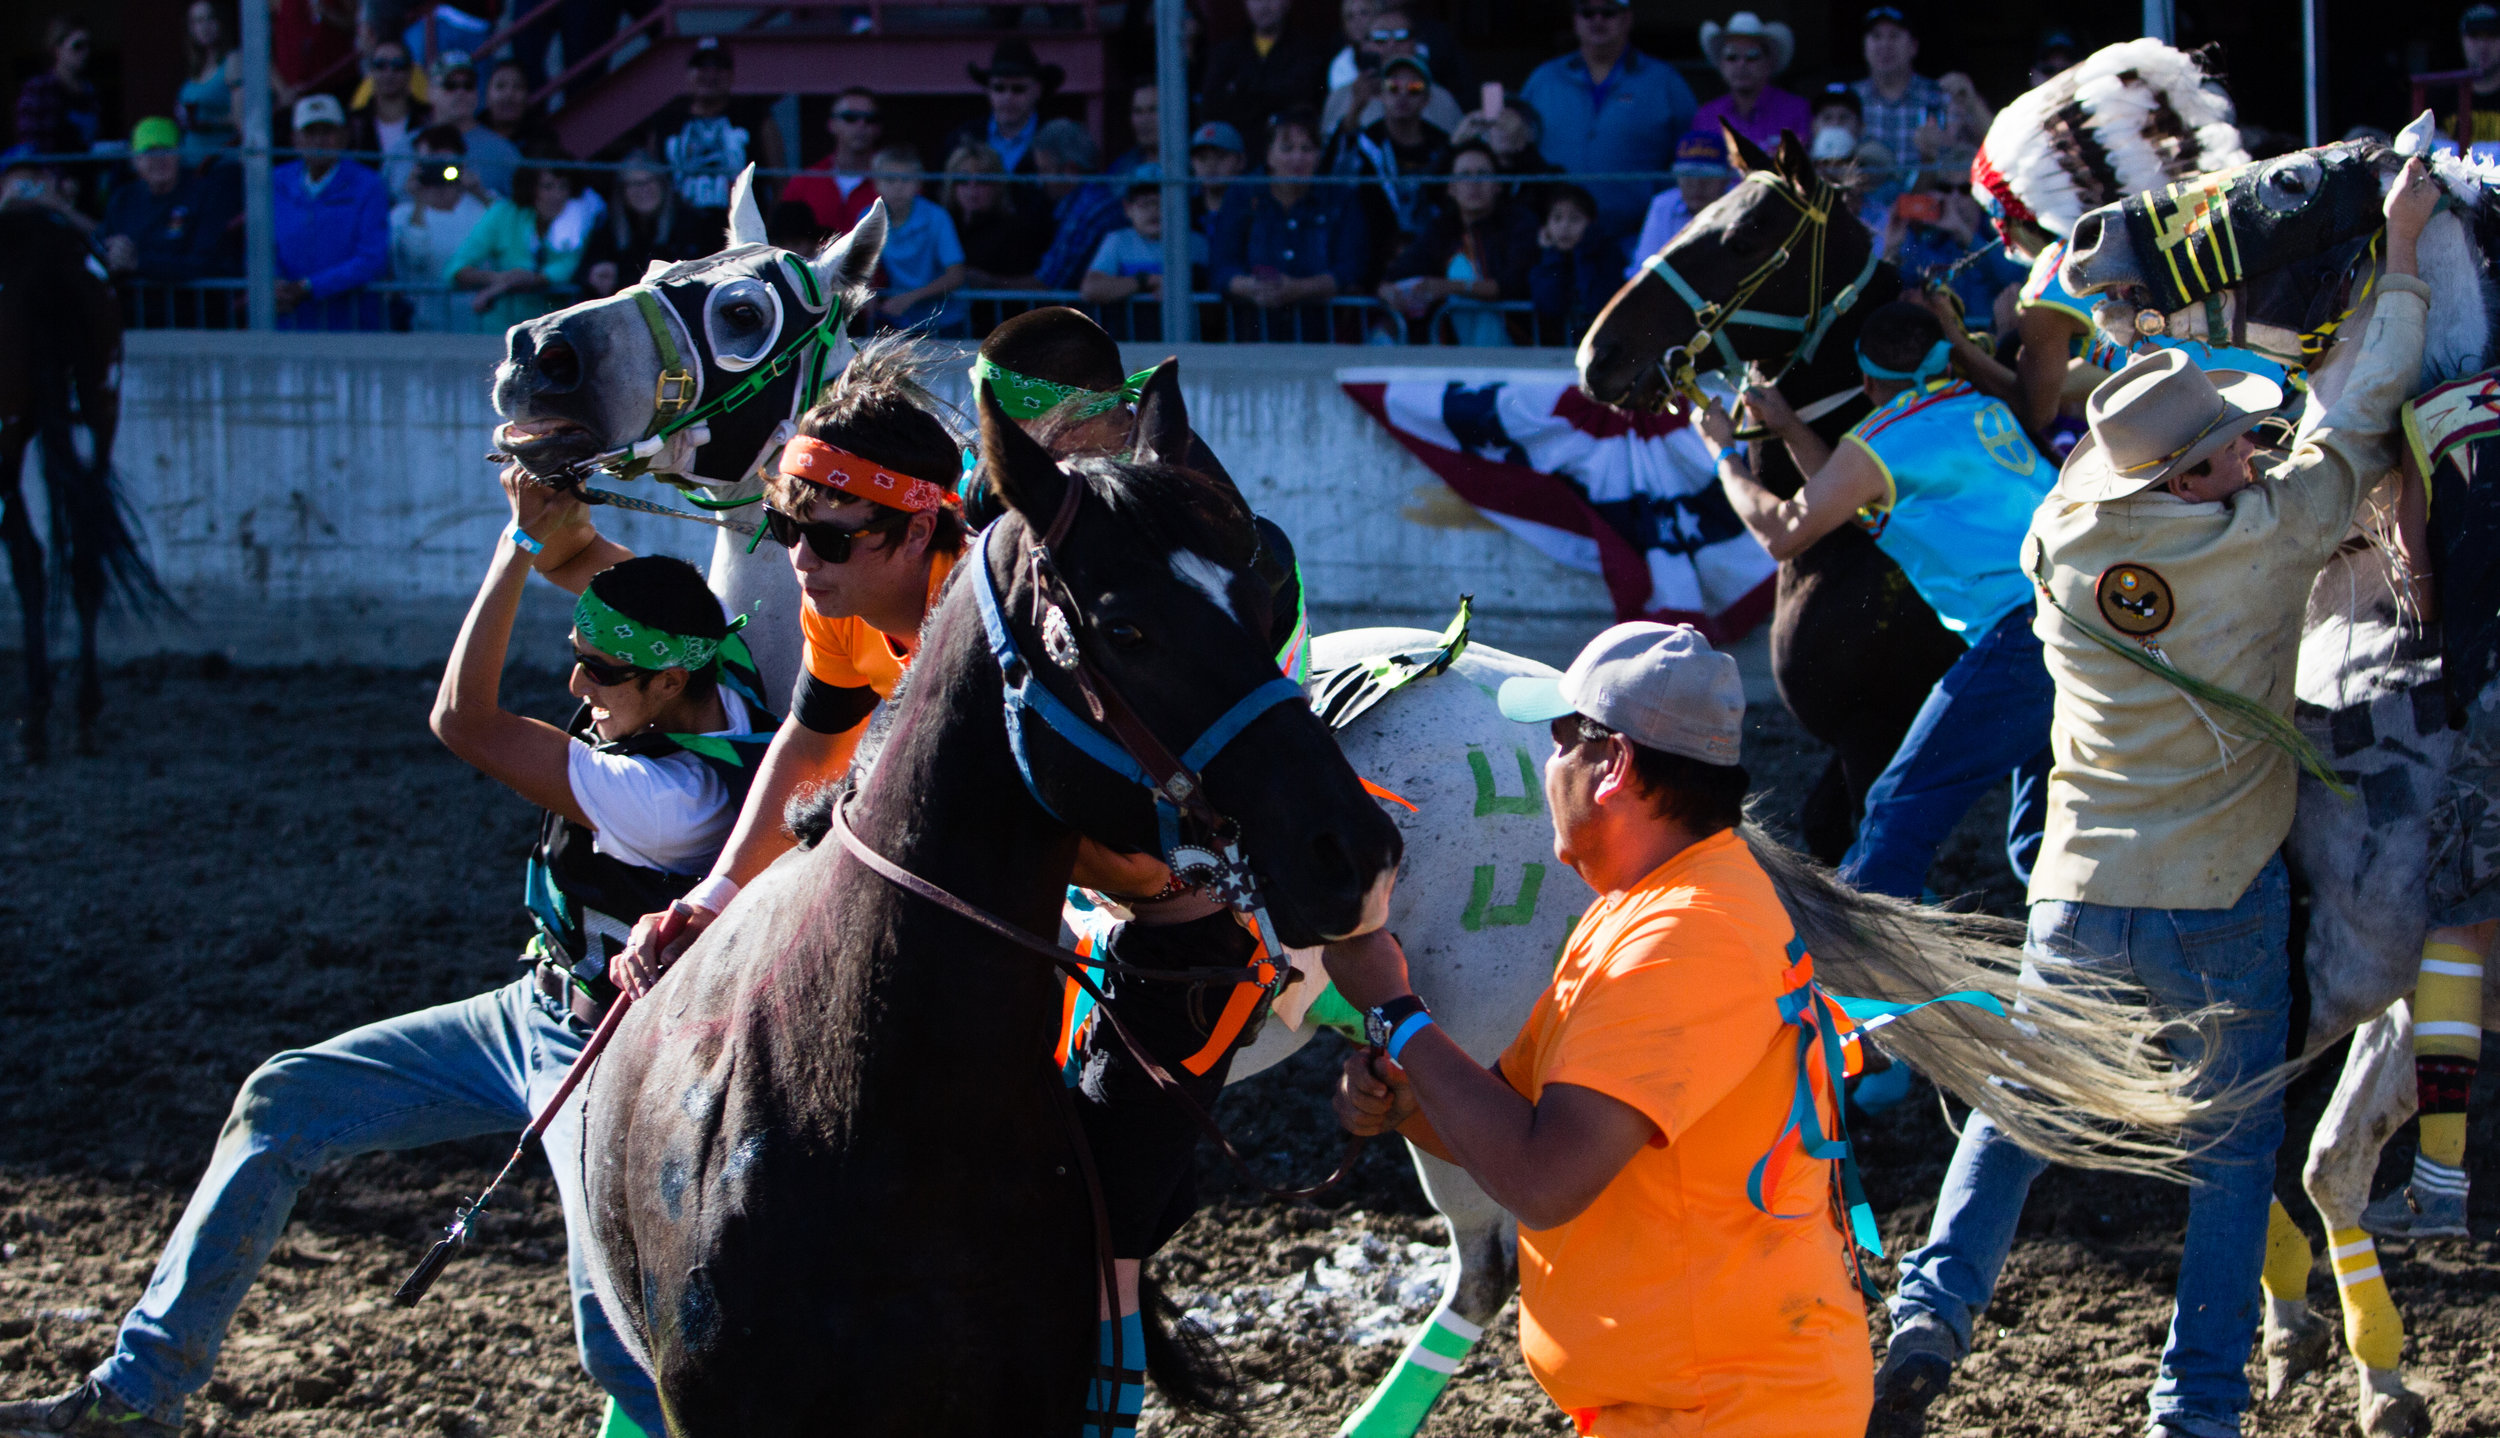 Riders struggle to mount their horses as the race begins during the All Nations Indian Relay Championships in Billings on September 25, 2016.